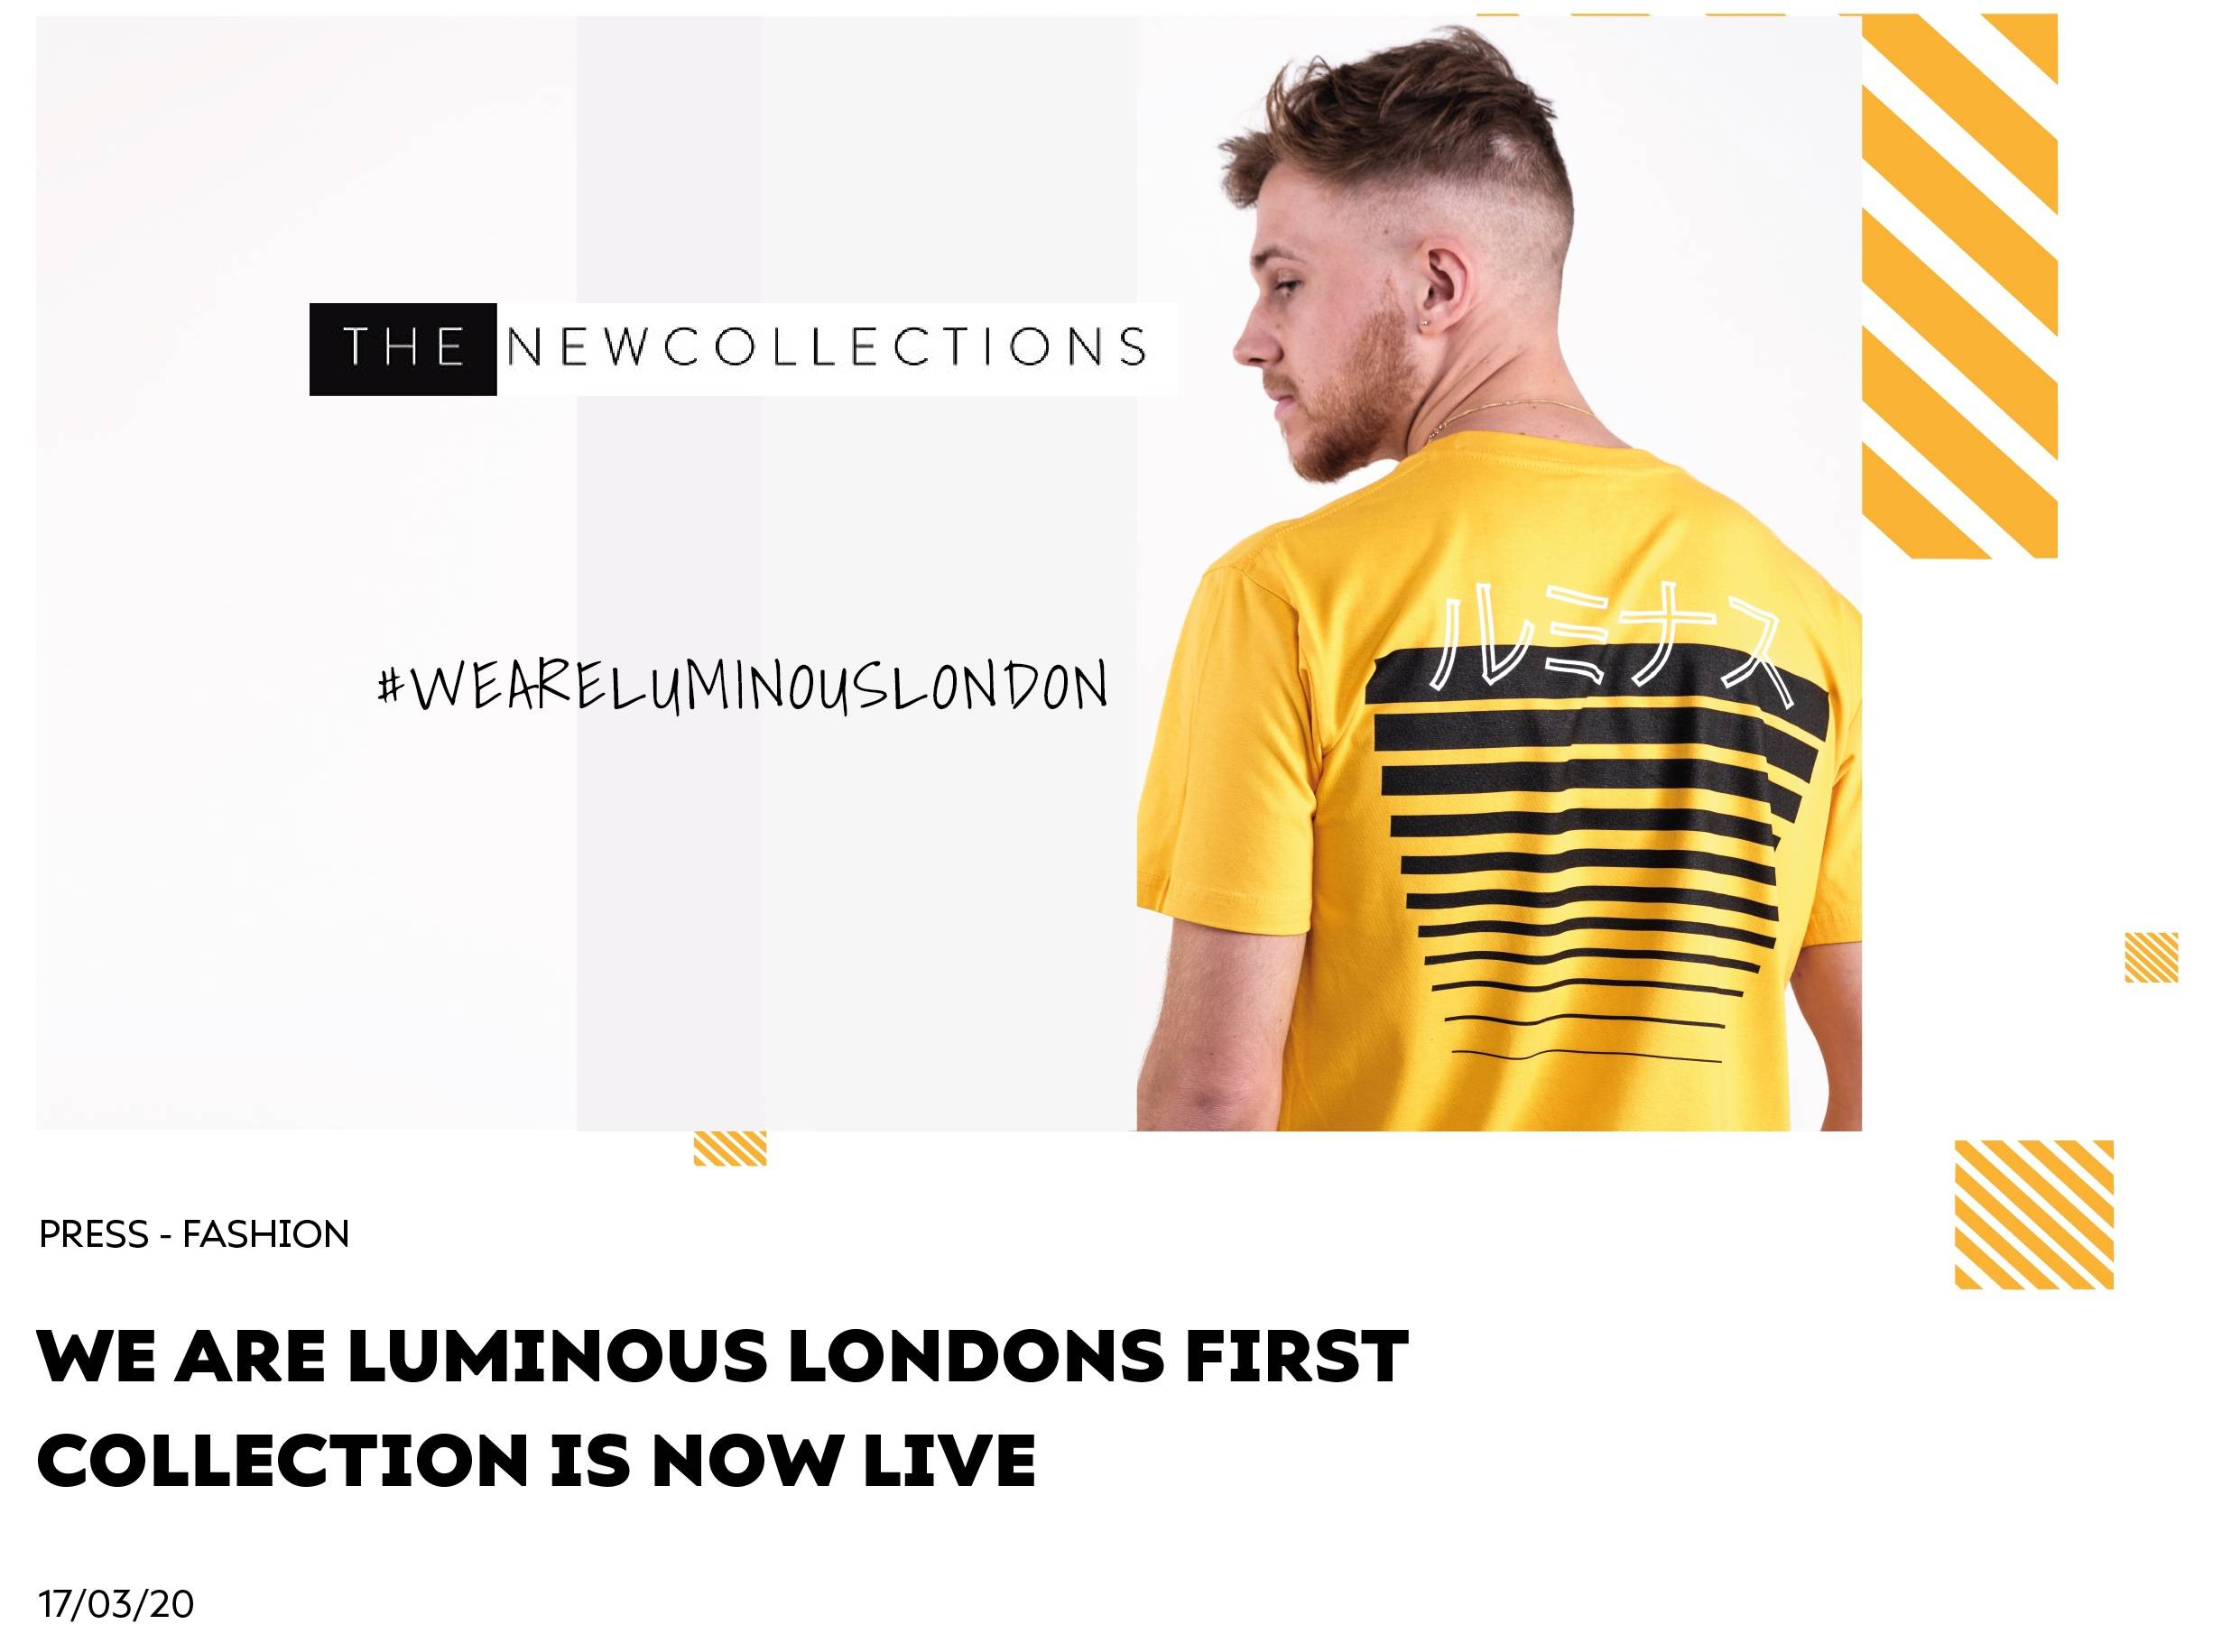 We Are Luminous Londons First Collection is Now Live